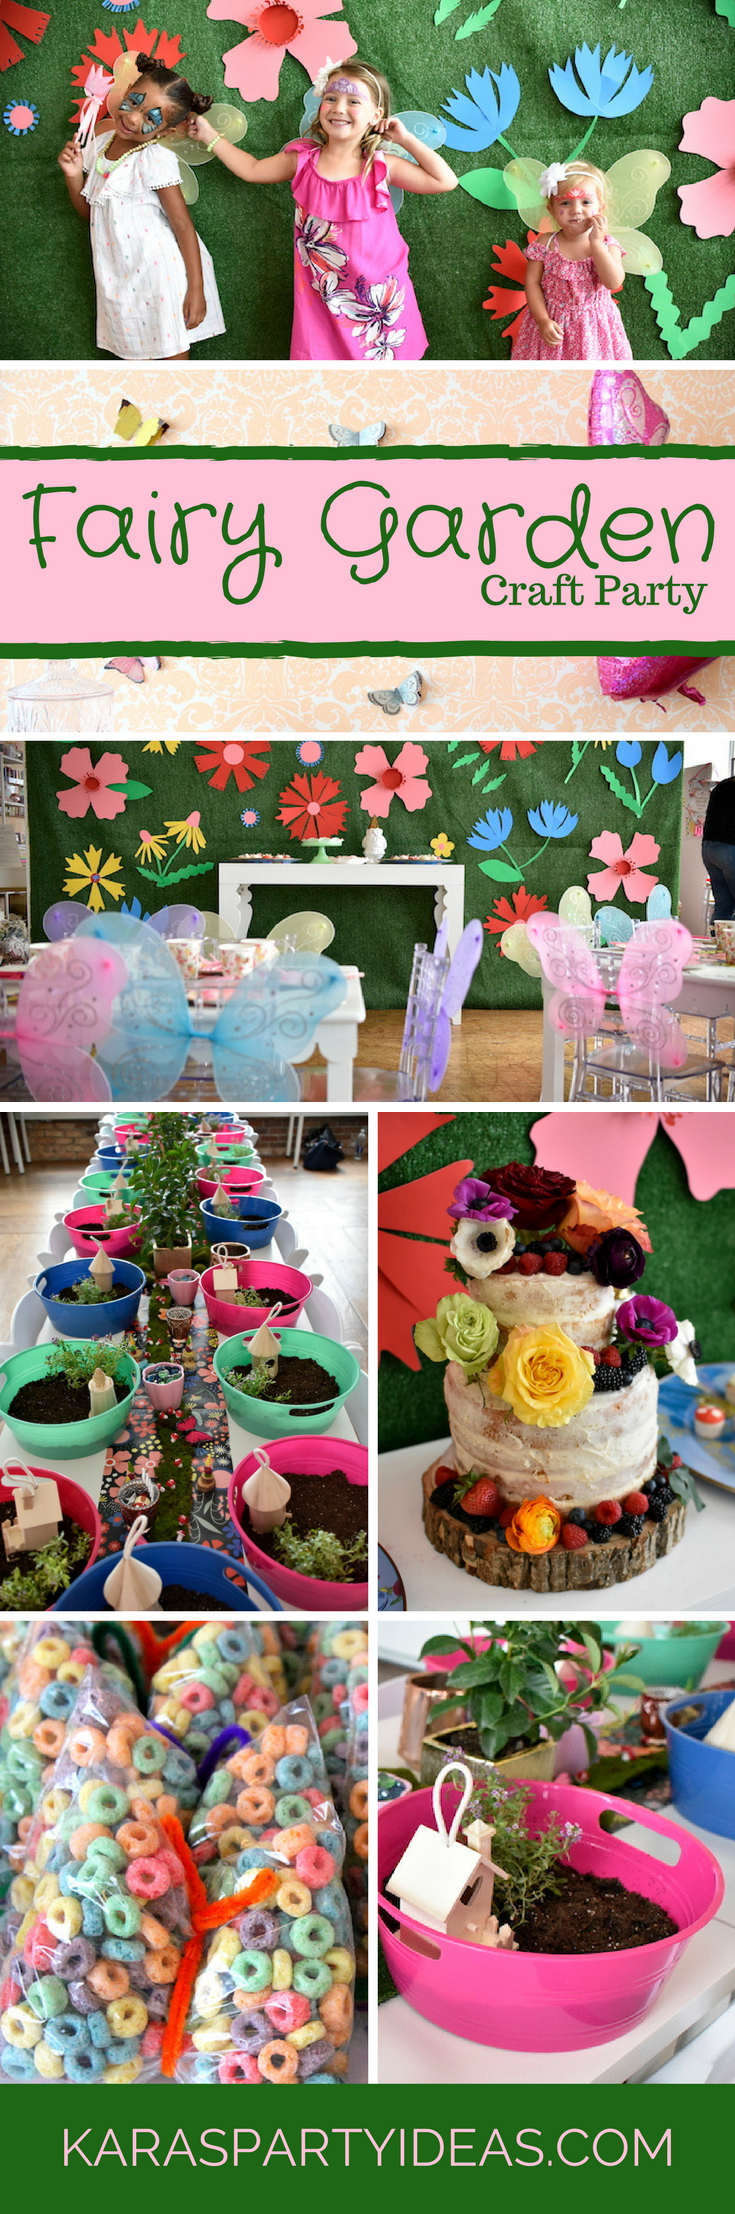 Fairy Garden Craft Party via Kara's Party Ideas